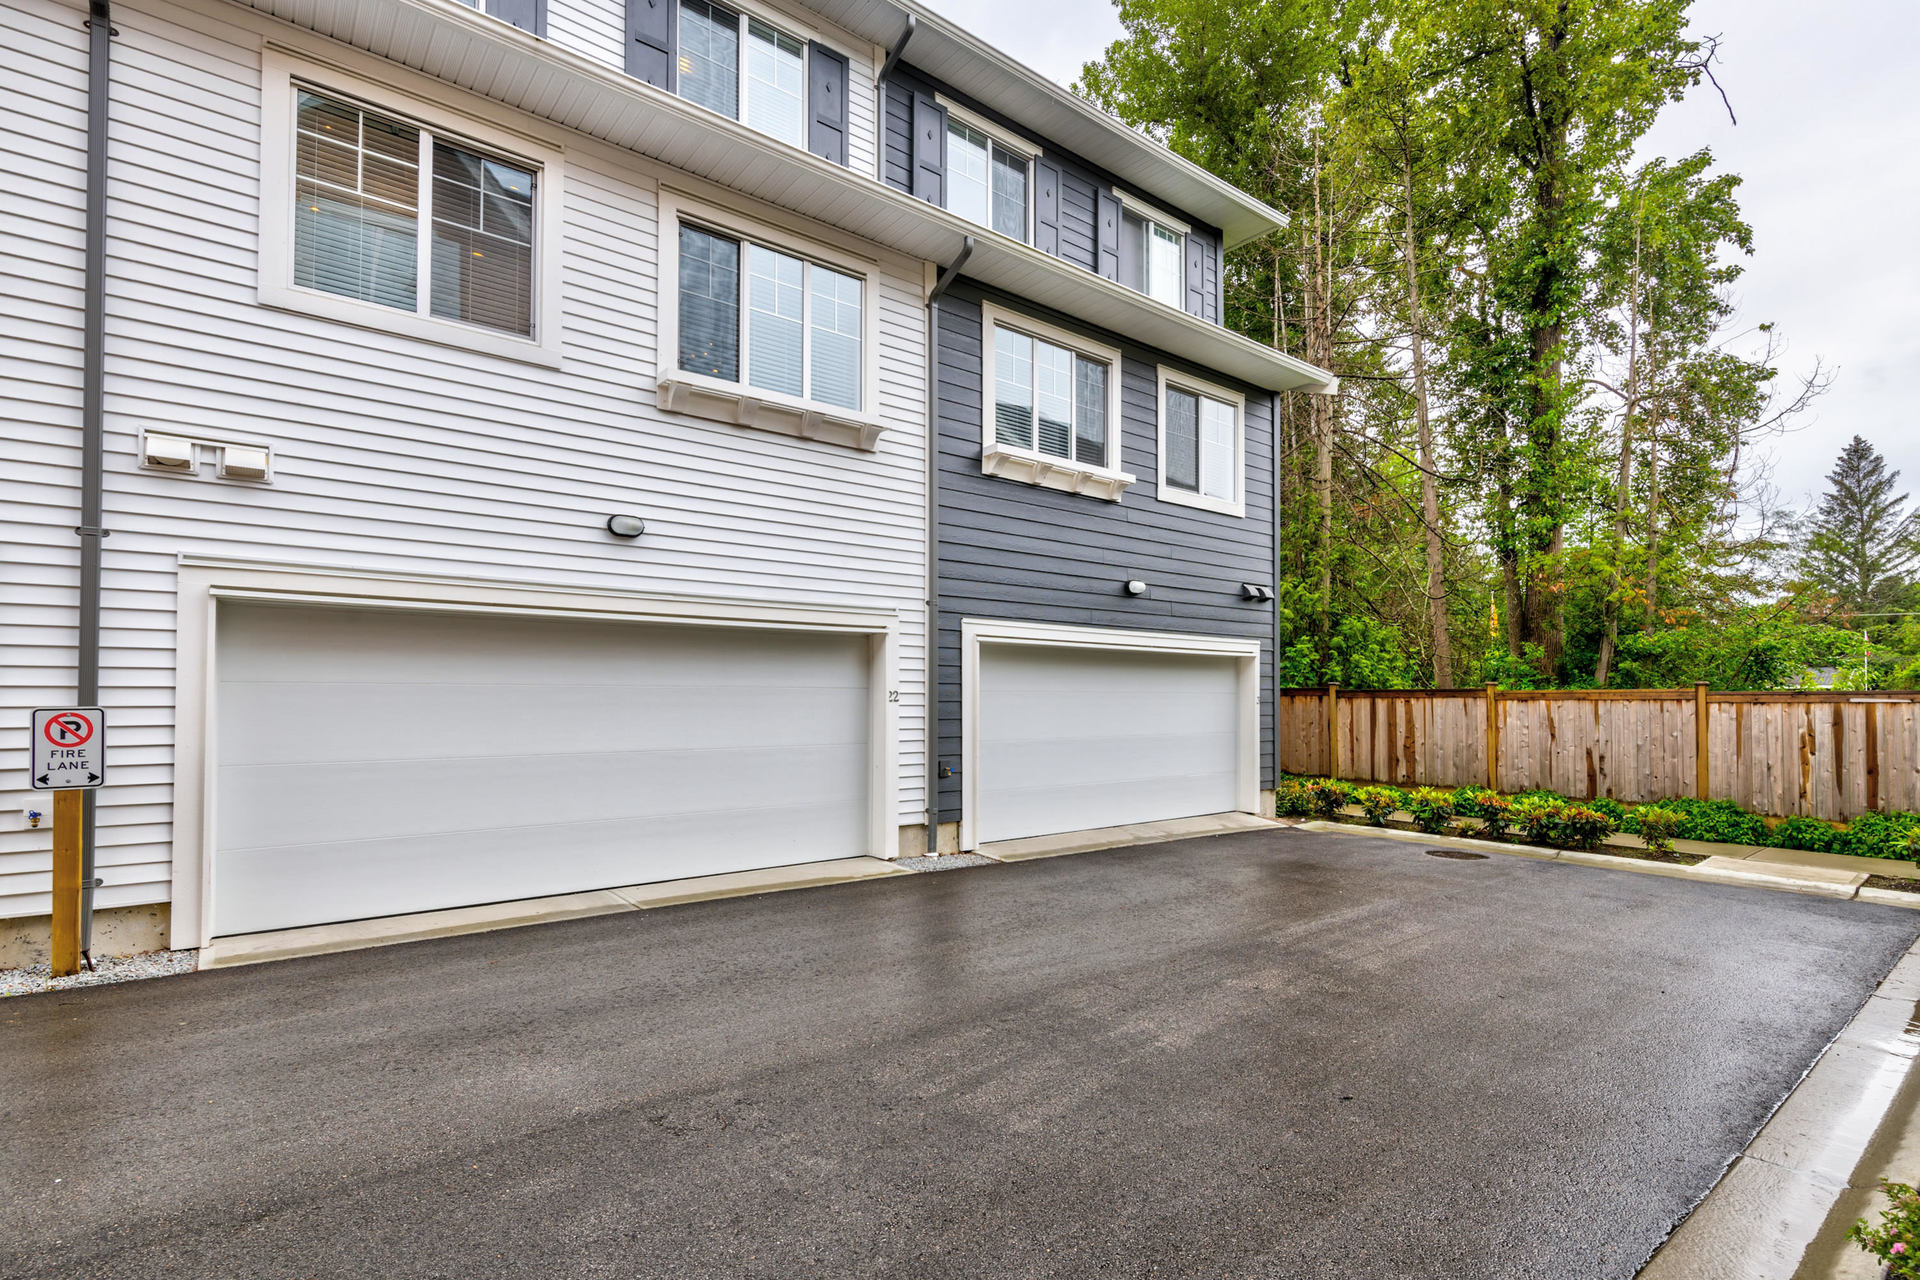 Rear Exterior Double Garage  at 22 - 127 172 Street, Pacific Douglas, South Surrey White Rock